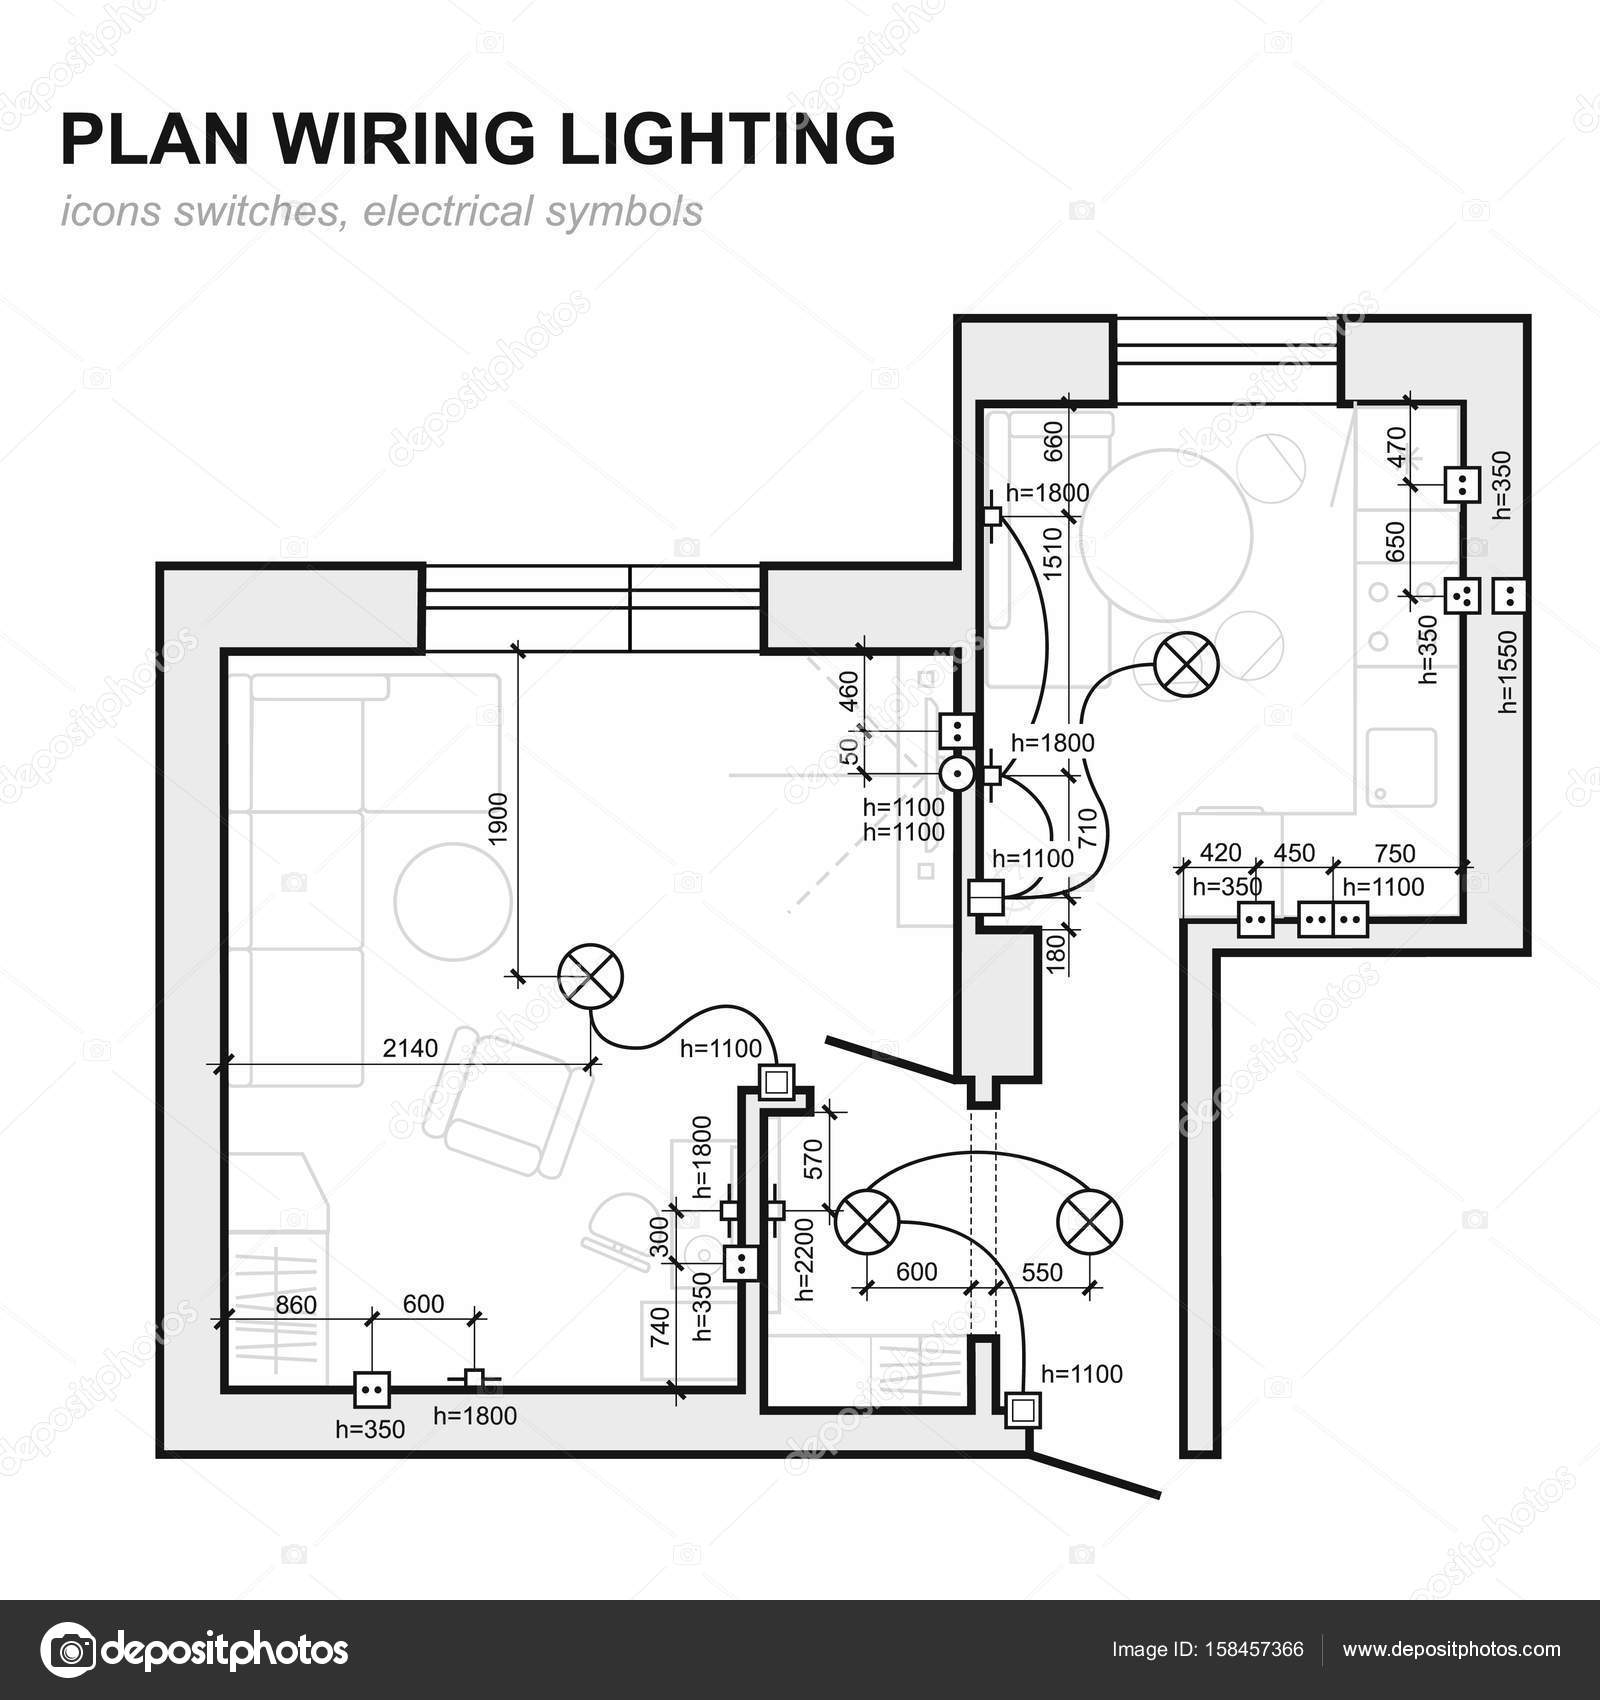 Plan wiring lighting electrical schematic interior set of standard electrical schematic interior set of standard icons switches electrical symbols for blueprint vector by parmenow malvernweather Choice Image